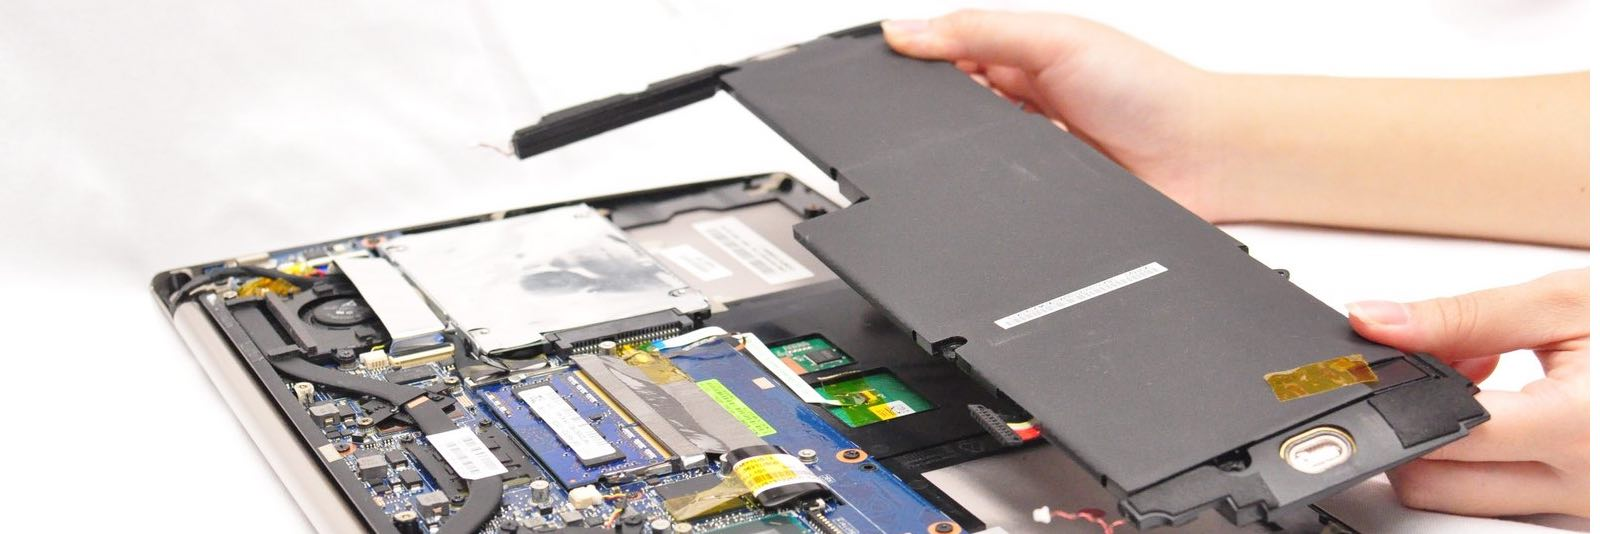 How To Care For Your Laptop S Battery So It Lasts Longer Ifixit